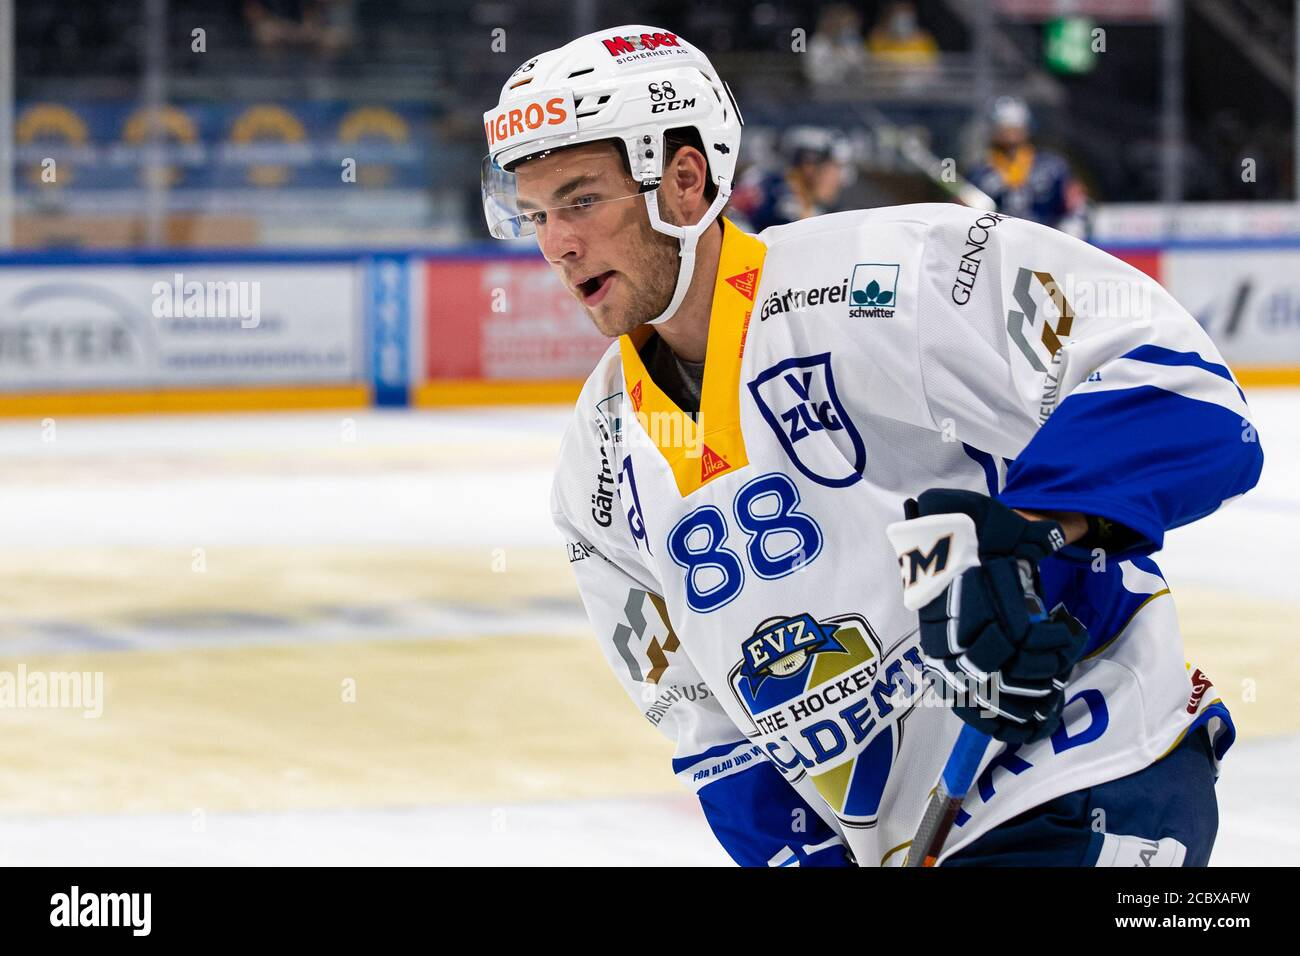 Anton Gradin # 88 (EVZ Academy) during the National and Swiss League preparation ice hockey game between EV Zug and EVZ Academy on August 16, 2020 in the Bossard Arena in Zug. Credit: SPP Sport Press Photo. /Alamy Live News Stock Photo